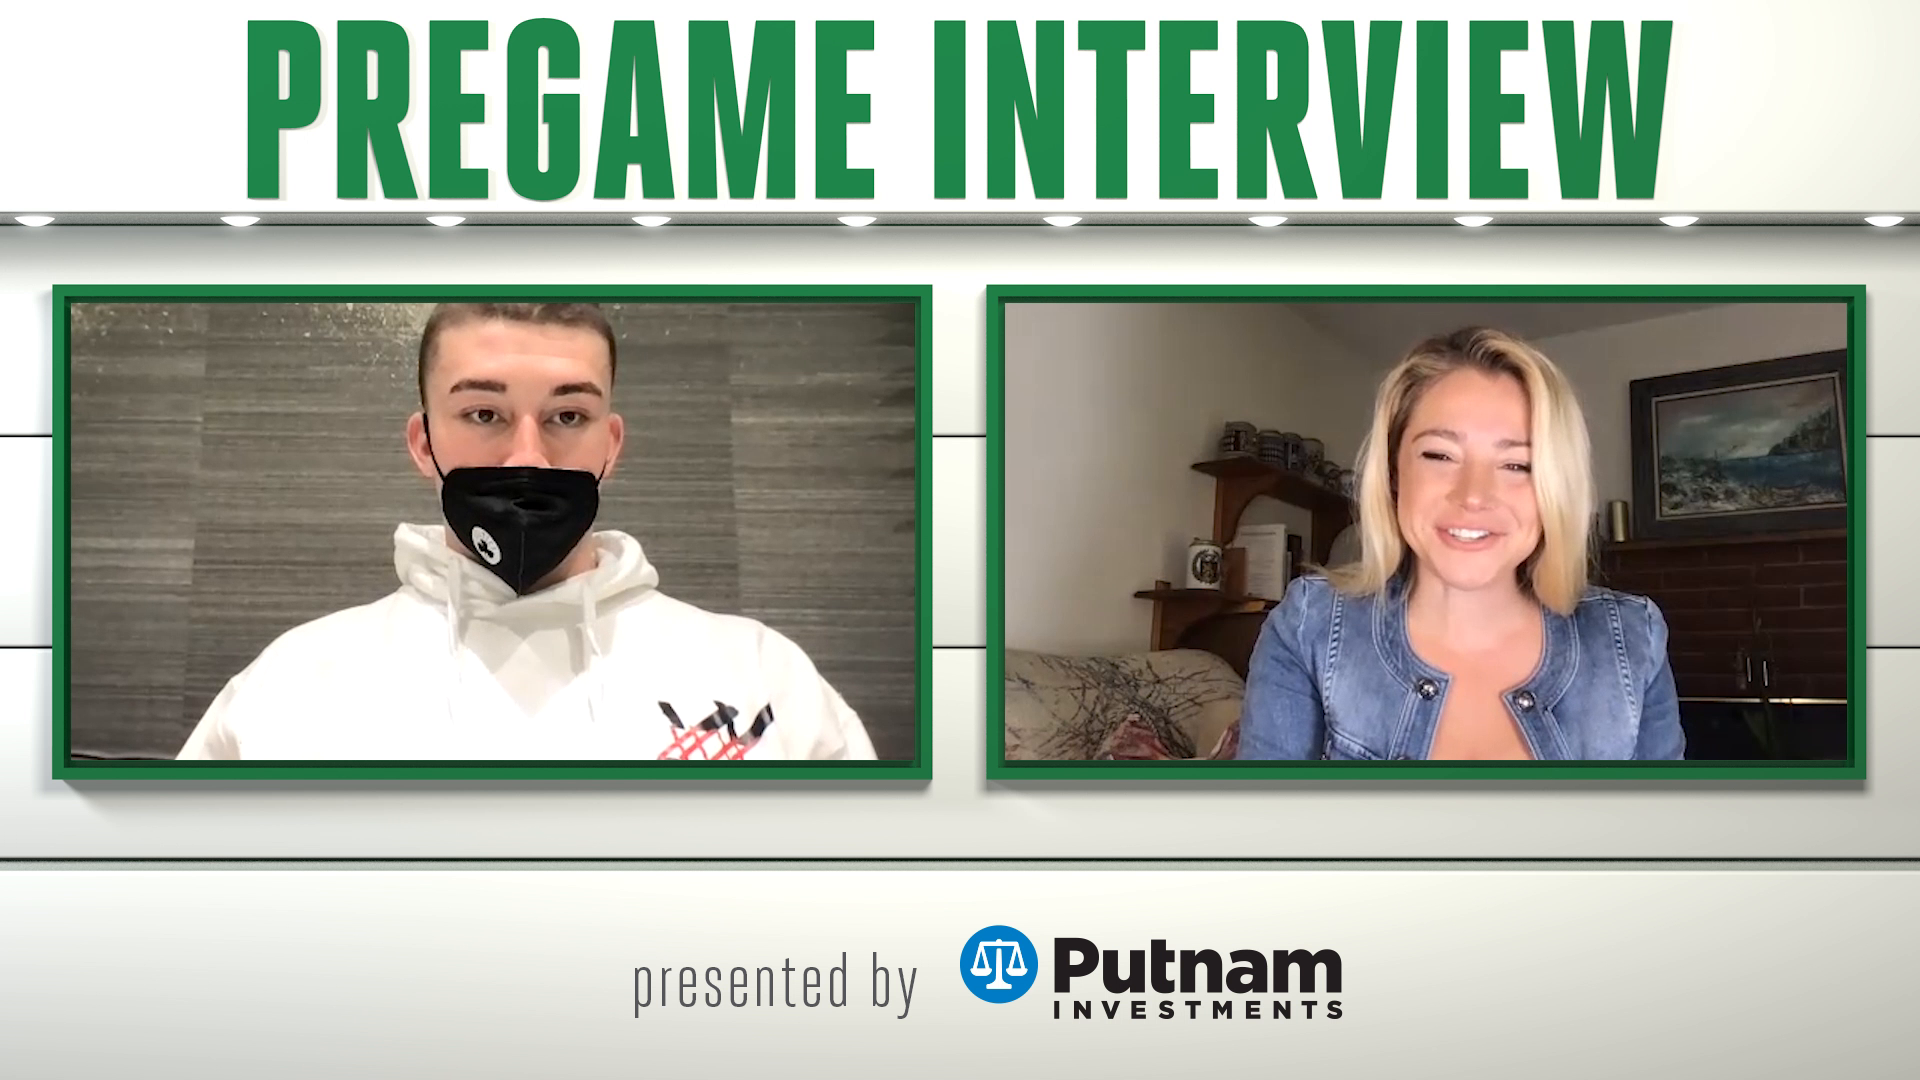 5/7 Putnam Pregame Interview: 'It's All In Our Preparation'